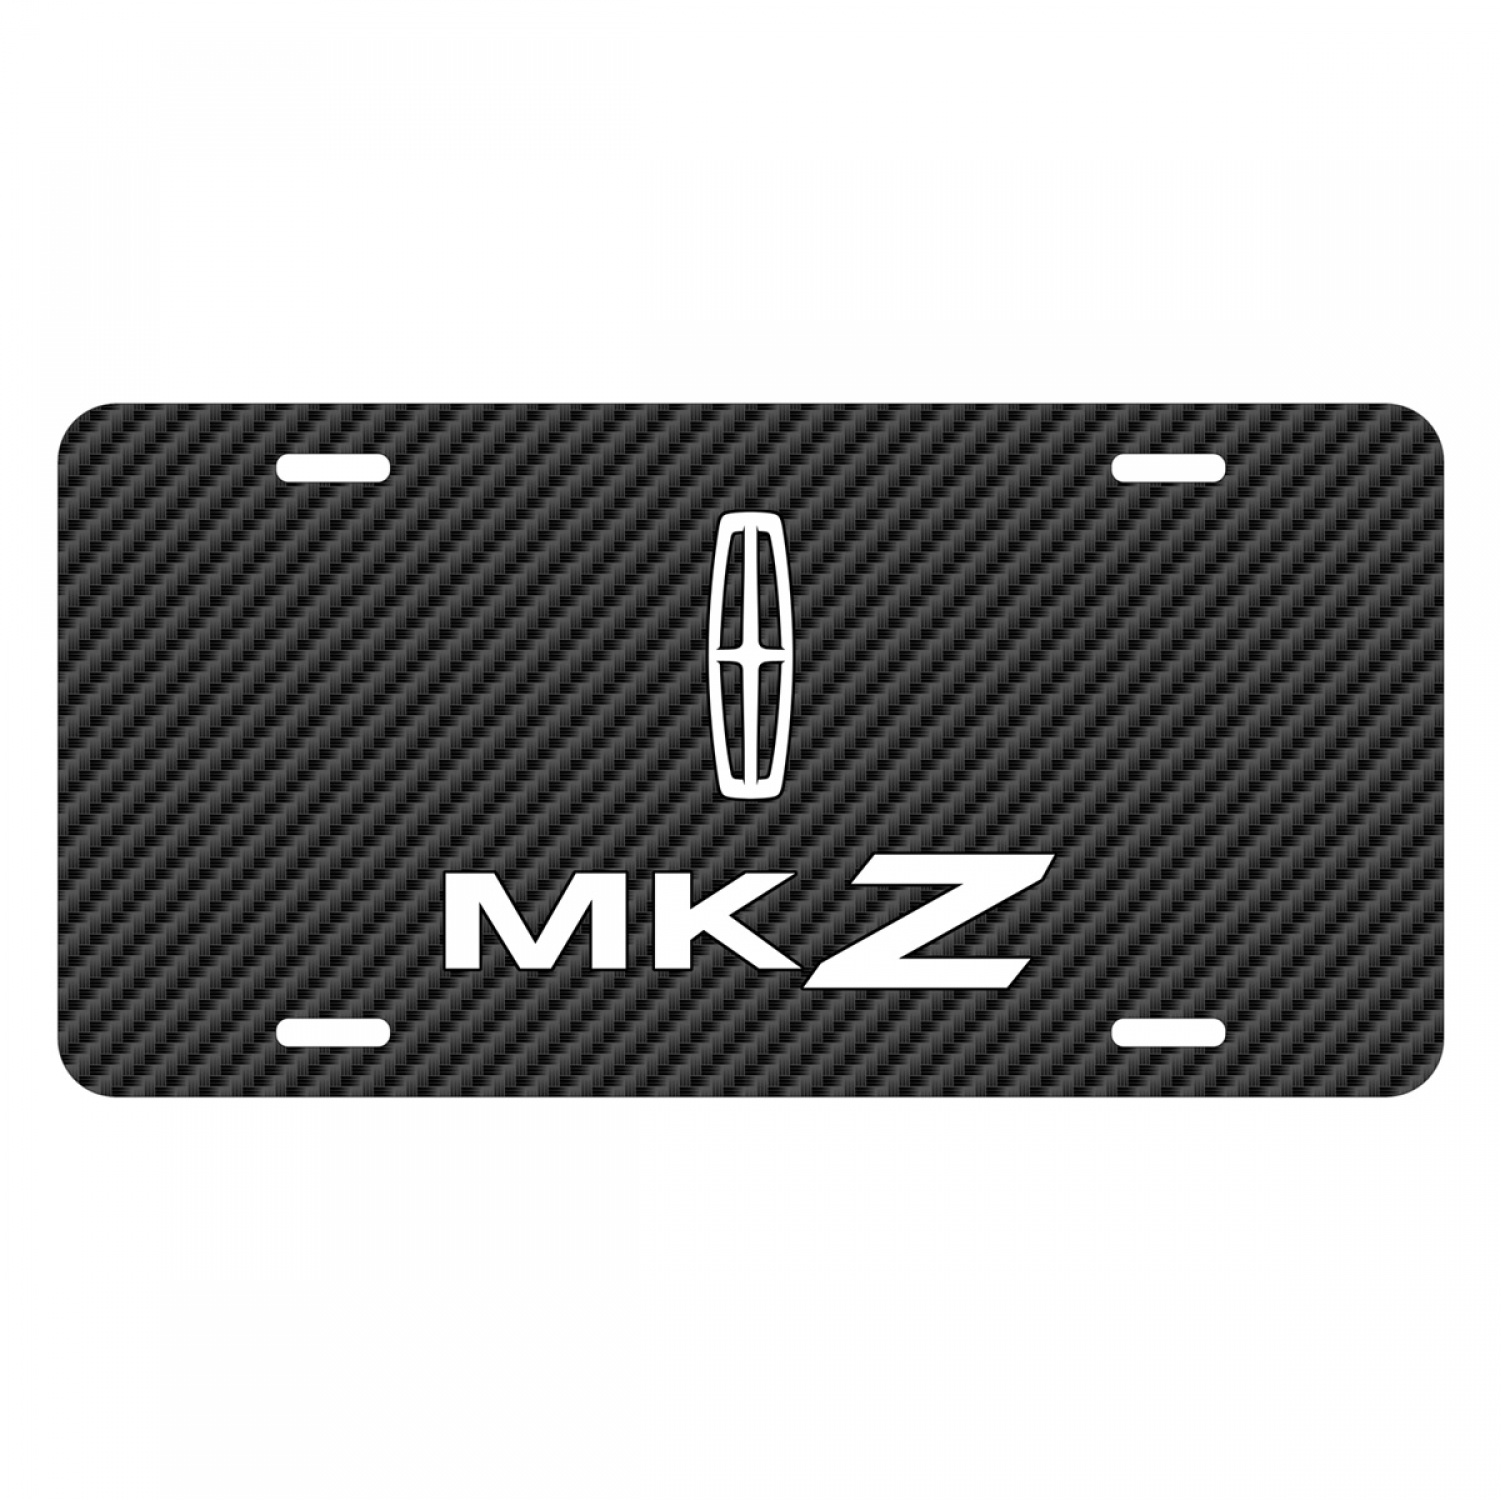 Lincoln MKZ Black Carbon Fiber Texture Graphic UV Metal License Plate